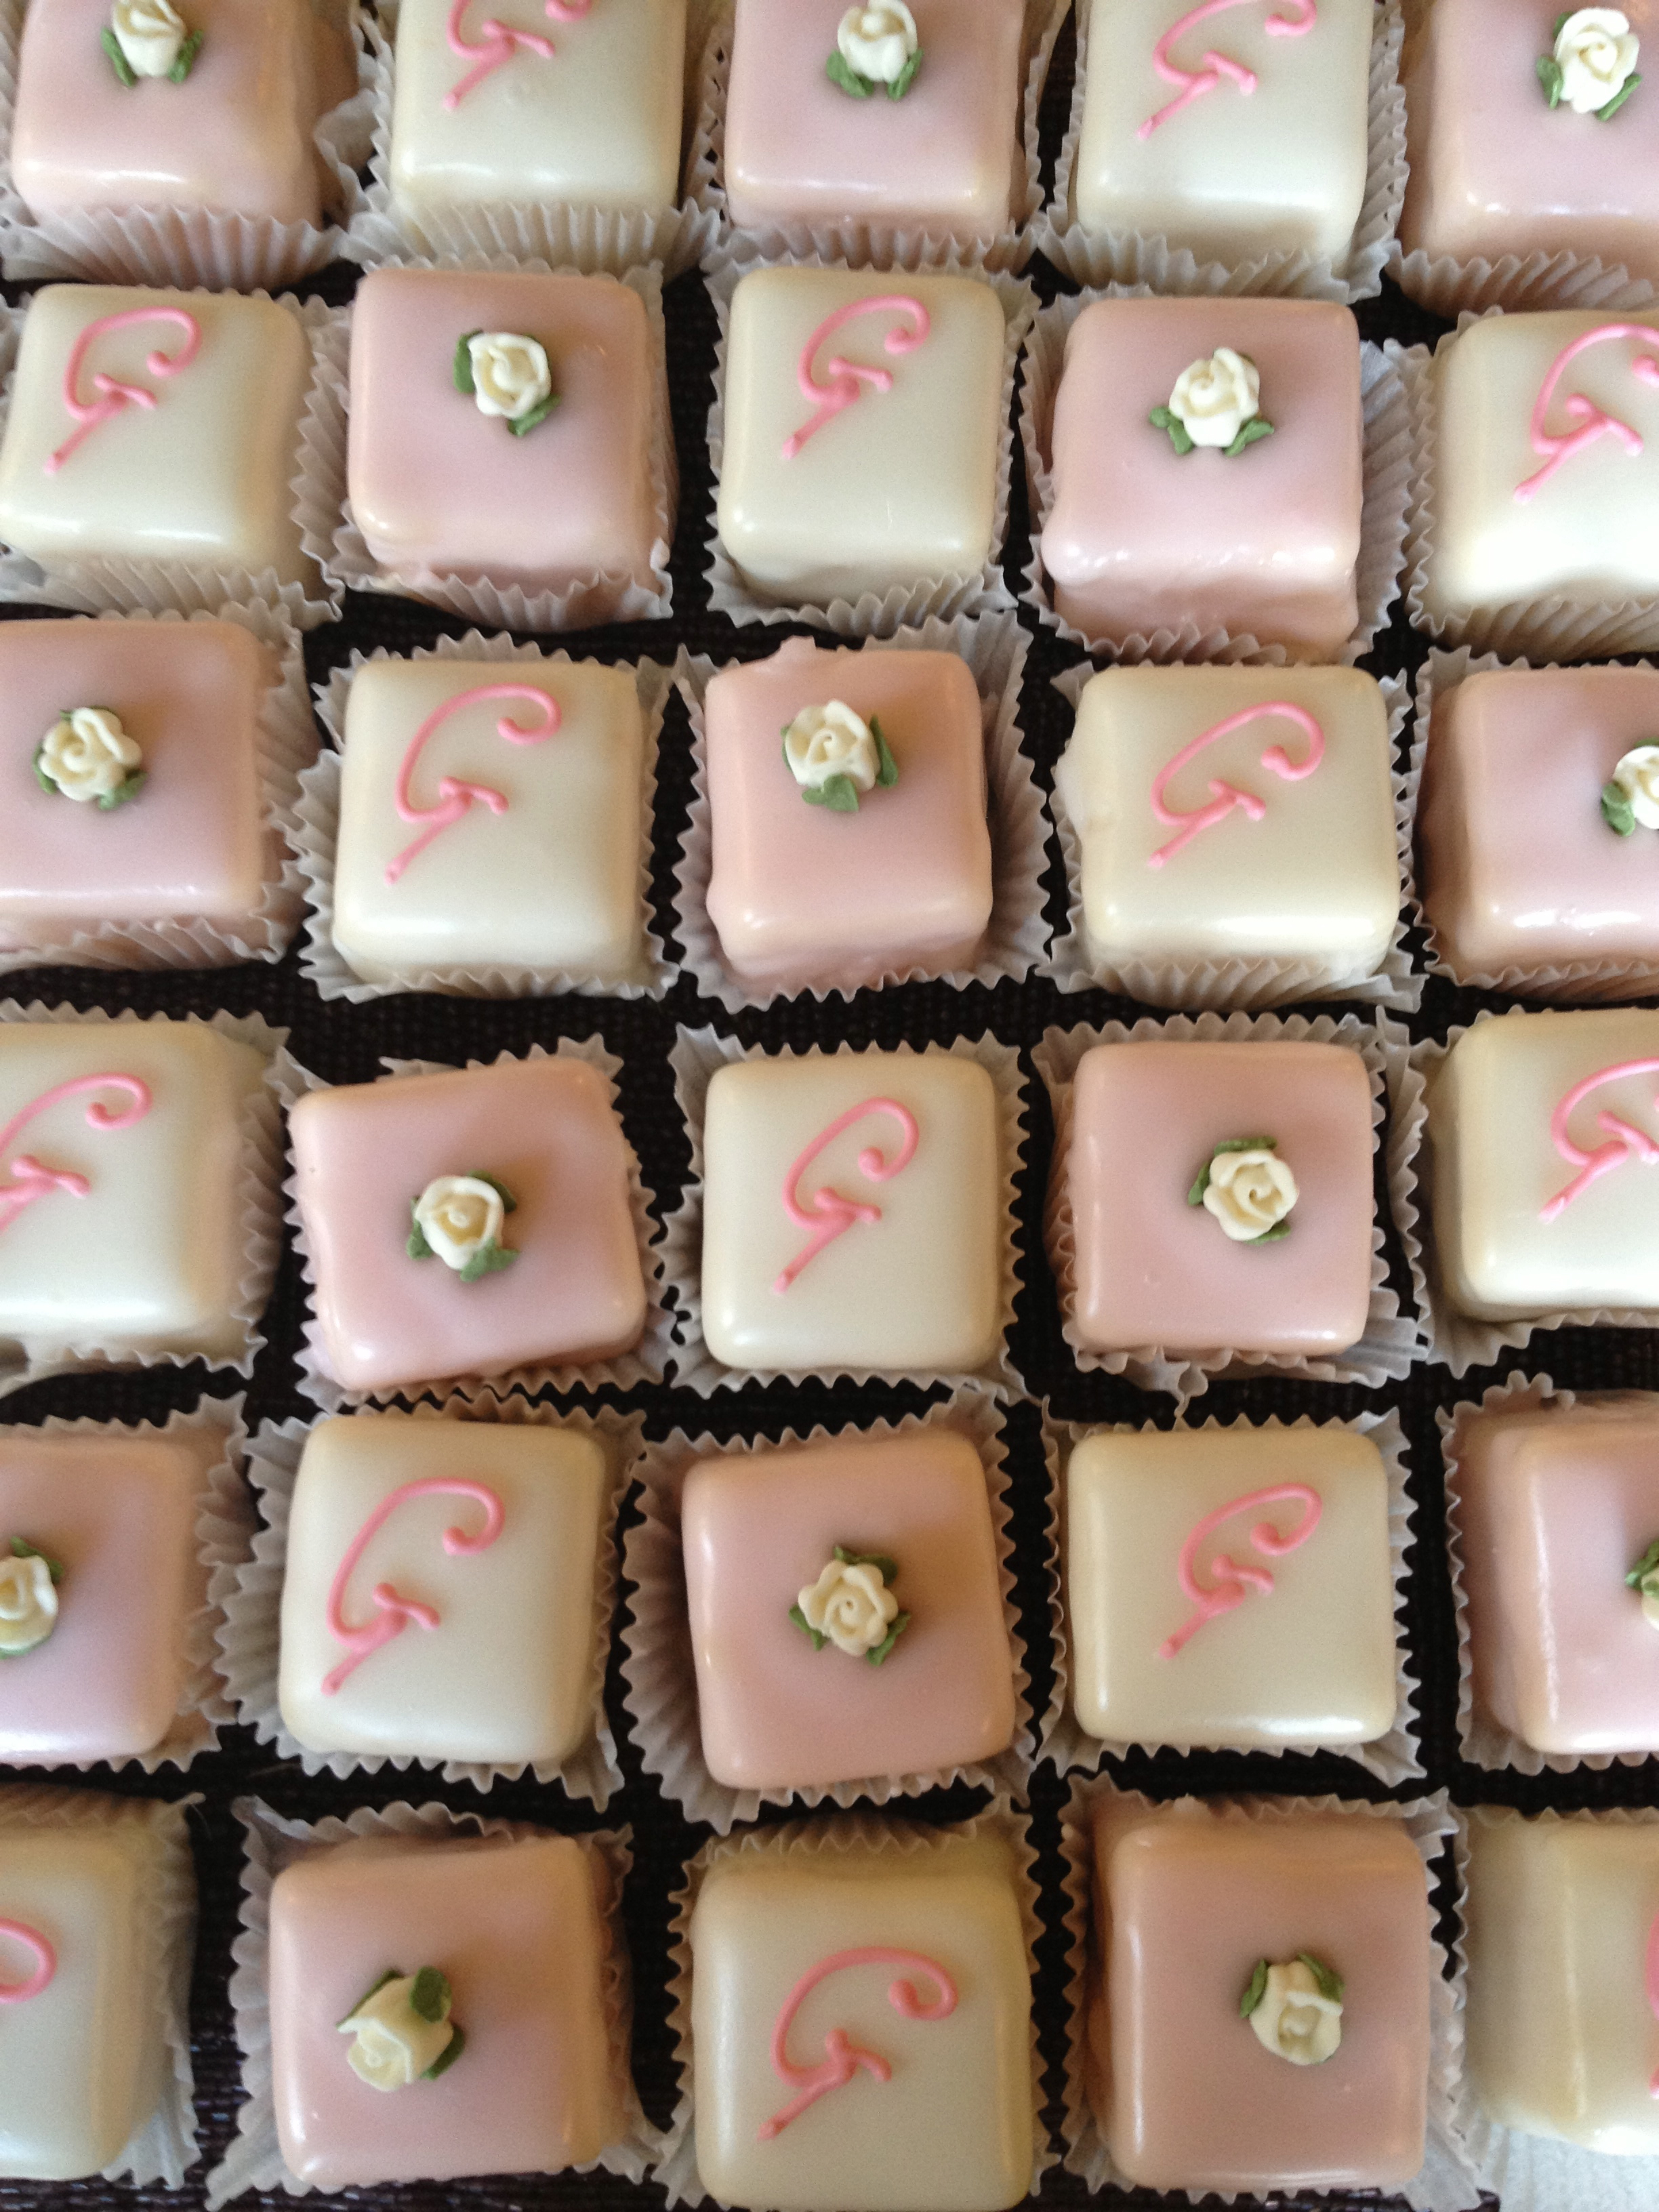 Christening fondant fancies.jpg